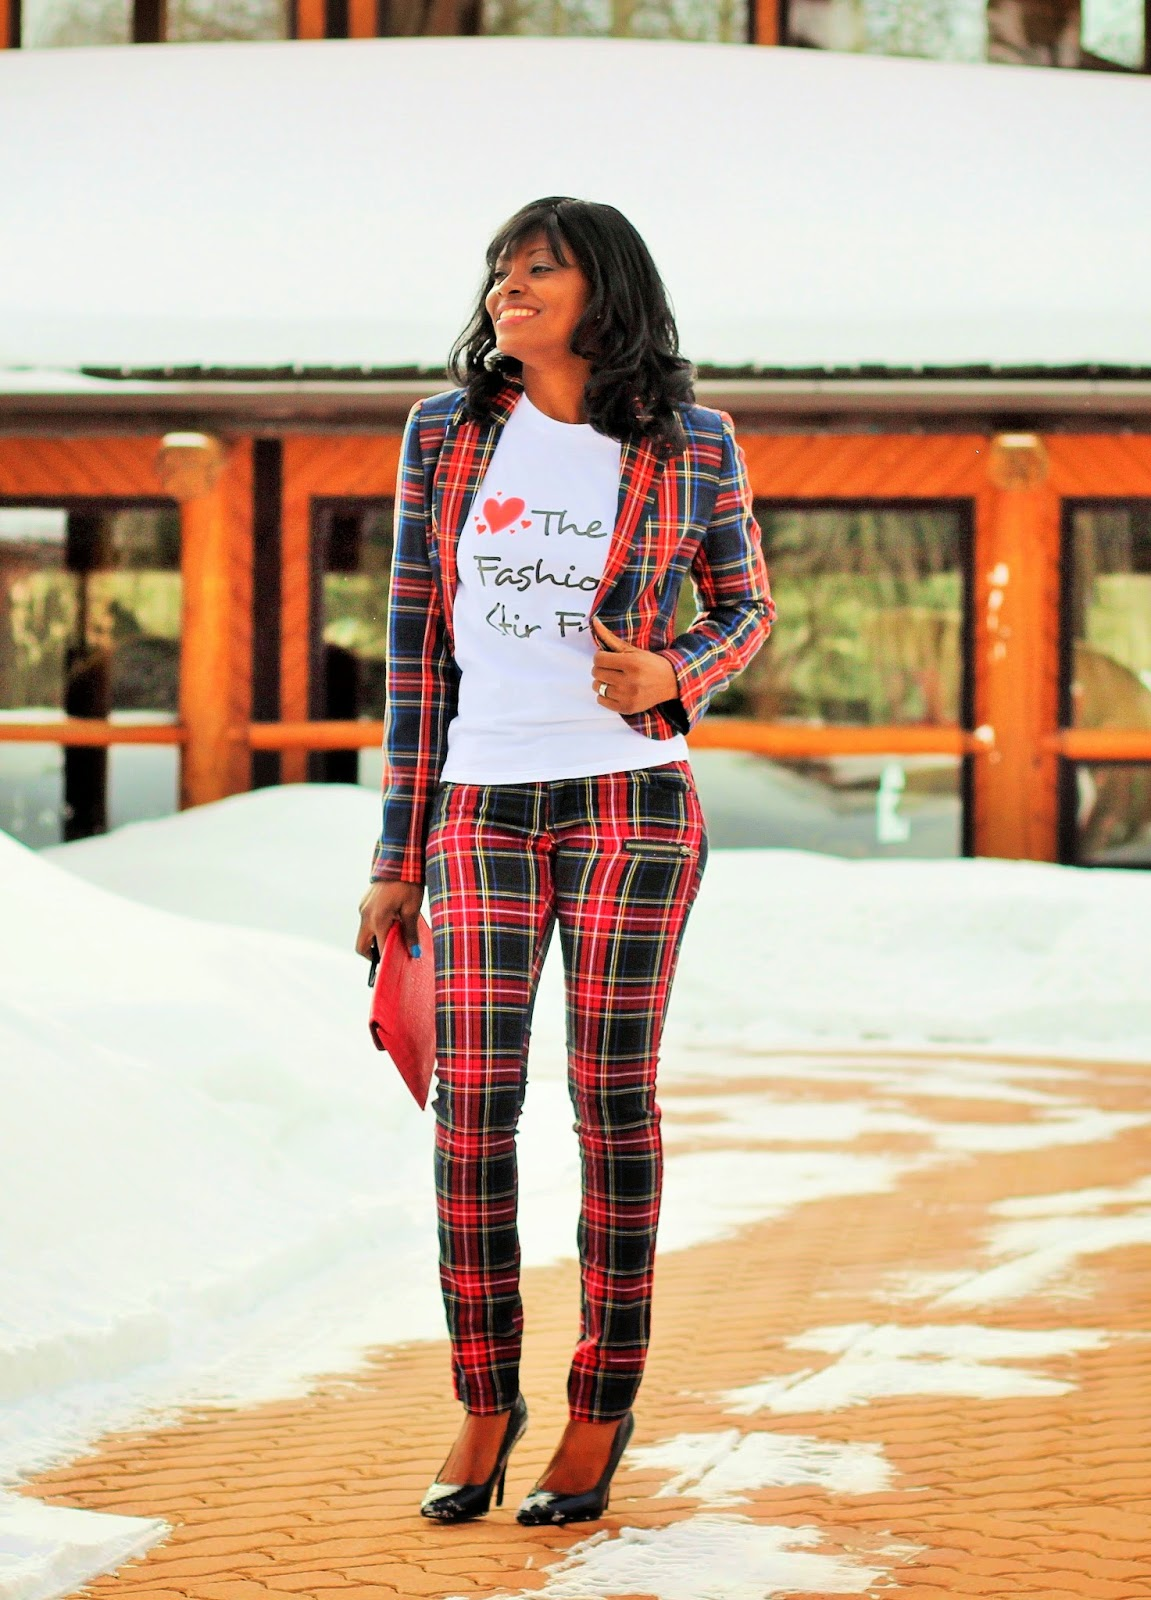 Perfect plaid outfit